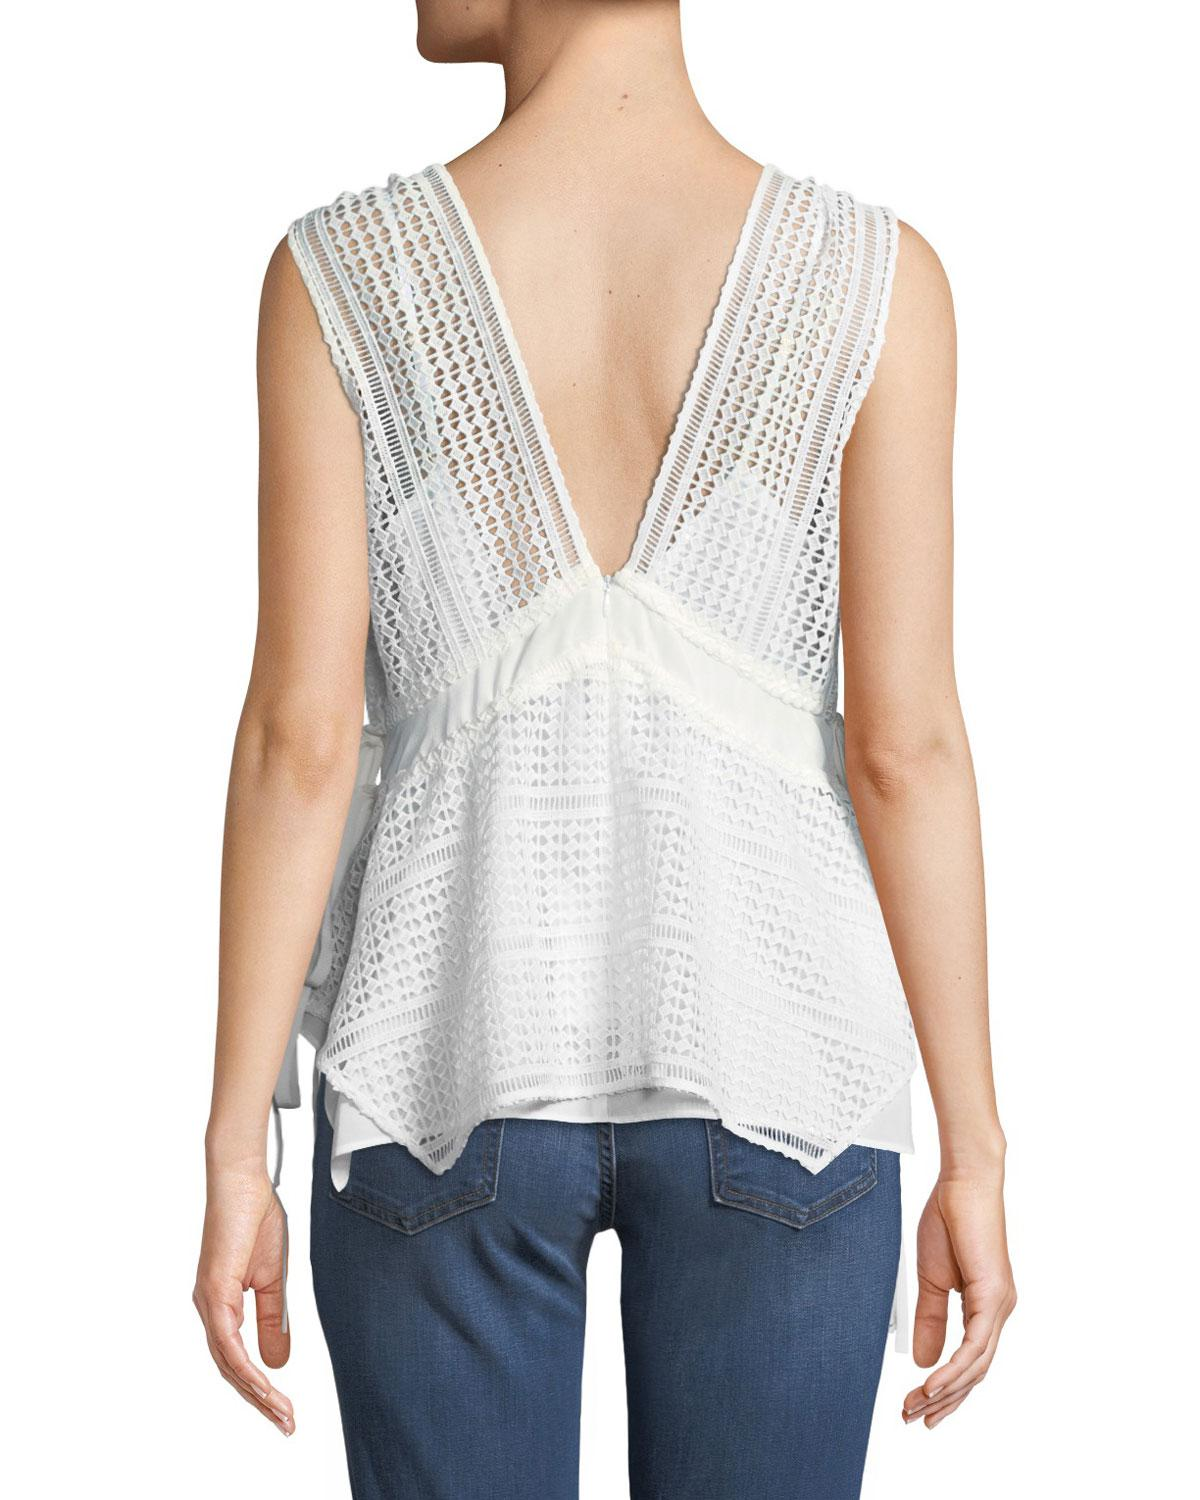 4e4c3026fdfbd9 Lyst - 10 Crosby Derek Lam Sleeveless V-neck Lace-guipure Top W  Ties in  White - Save 52%